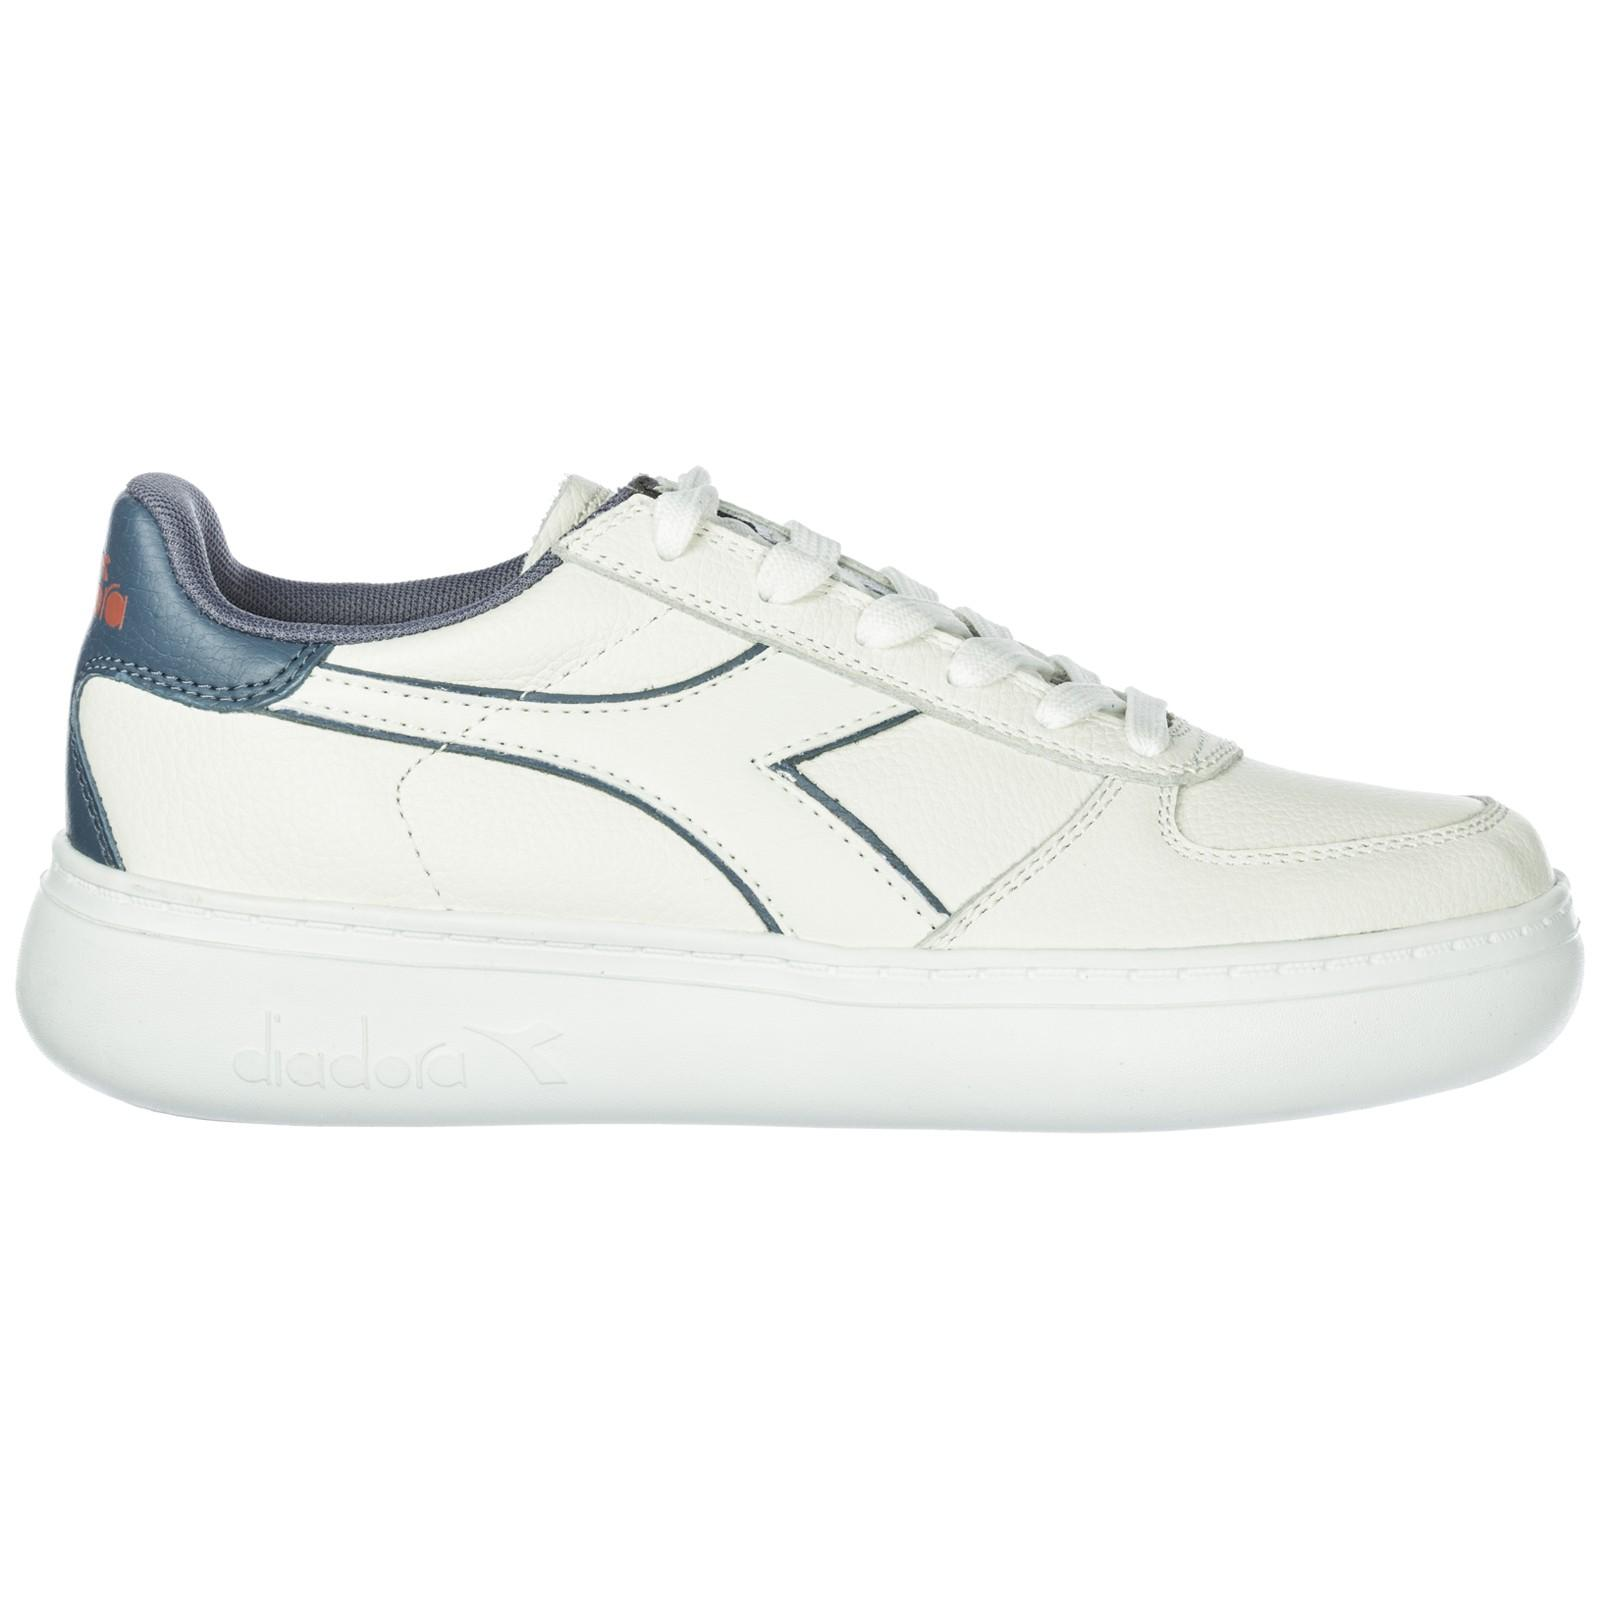 b67d3af447 Women's Shoes Leather Trainers Sneakers B. Elite L Wide in White